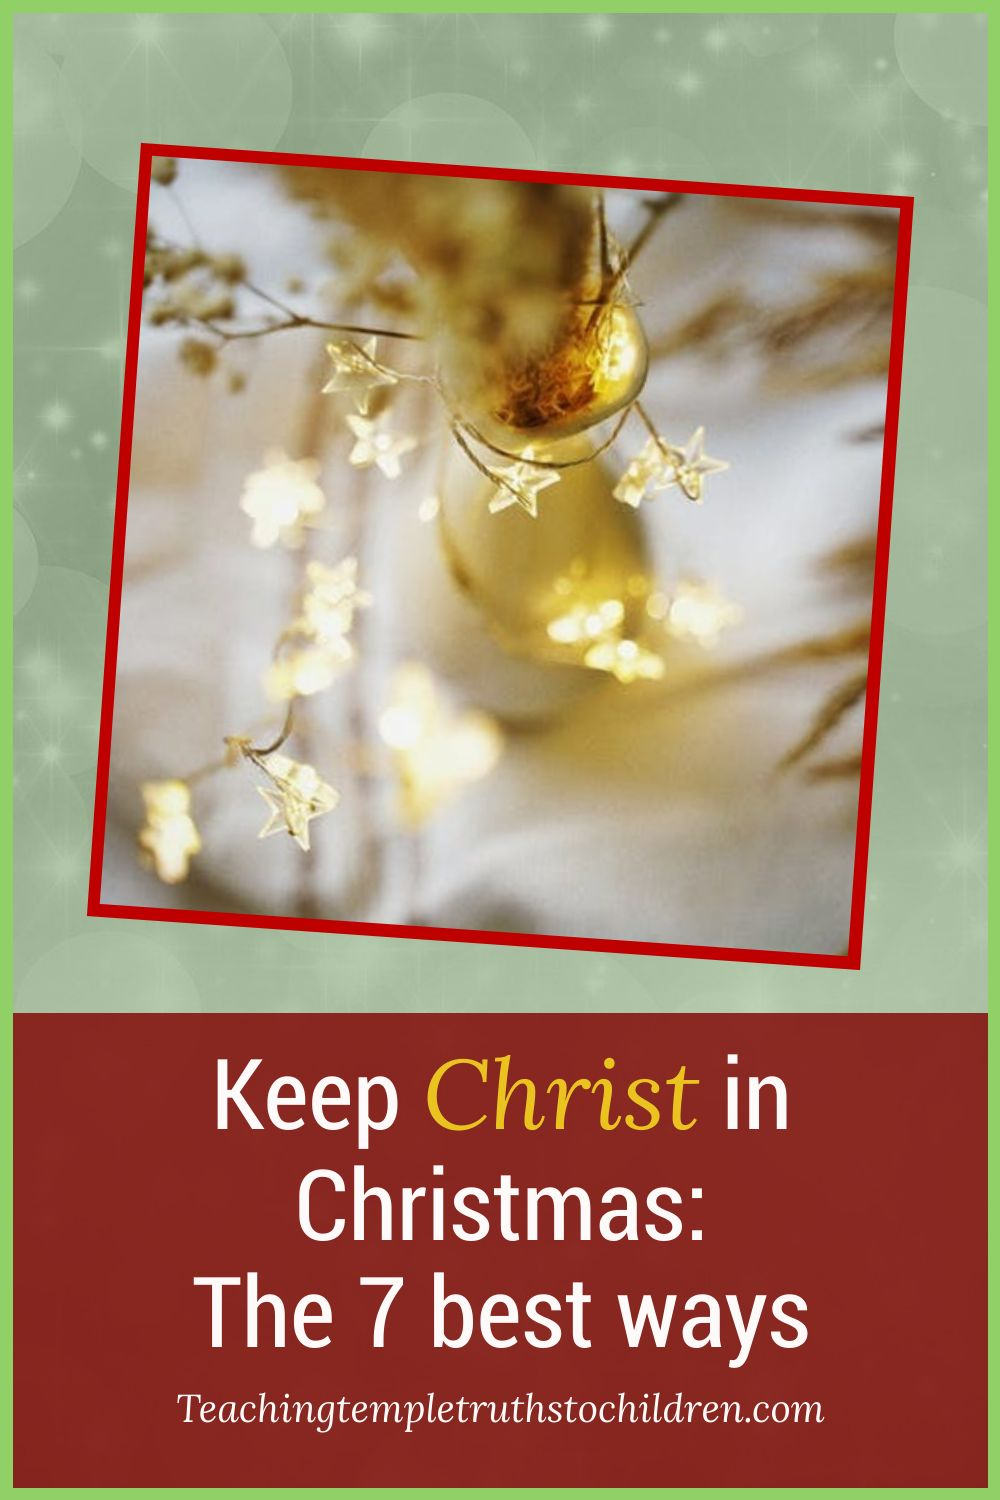 Keeping Christ in Christmas: The 7 best ways